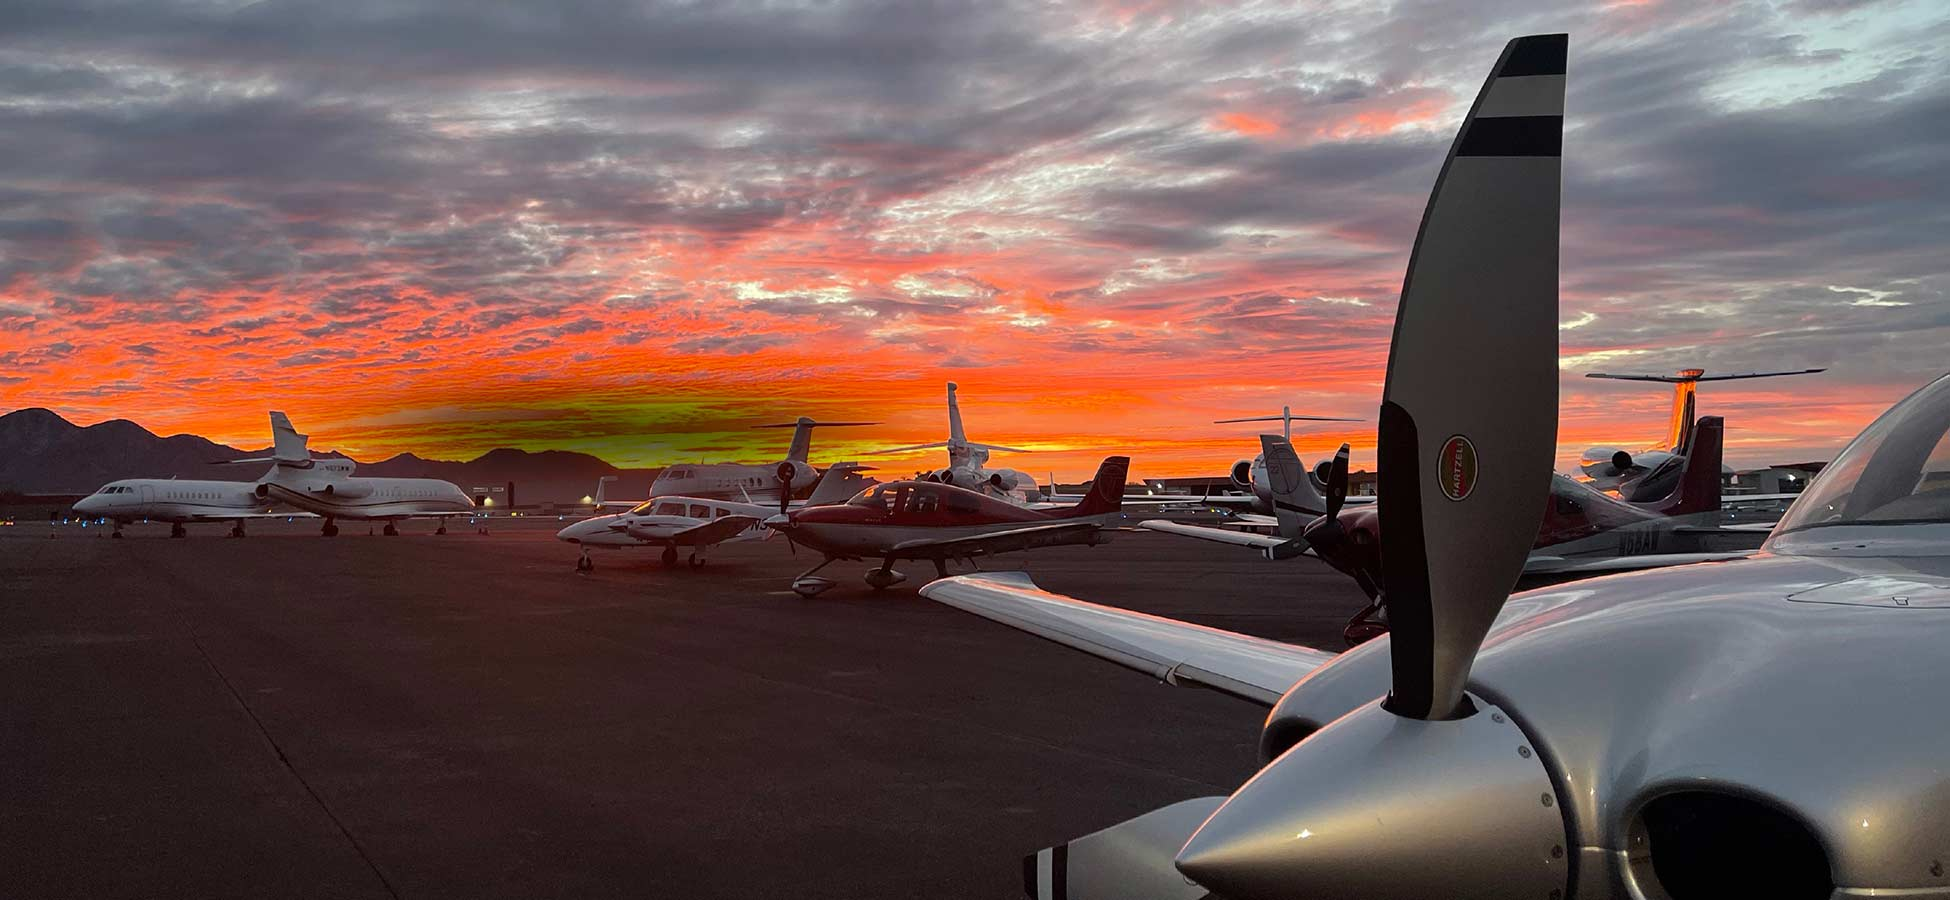 Best Aircraft Technology and Safety Scottsdale